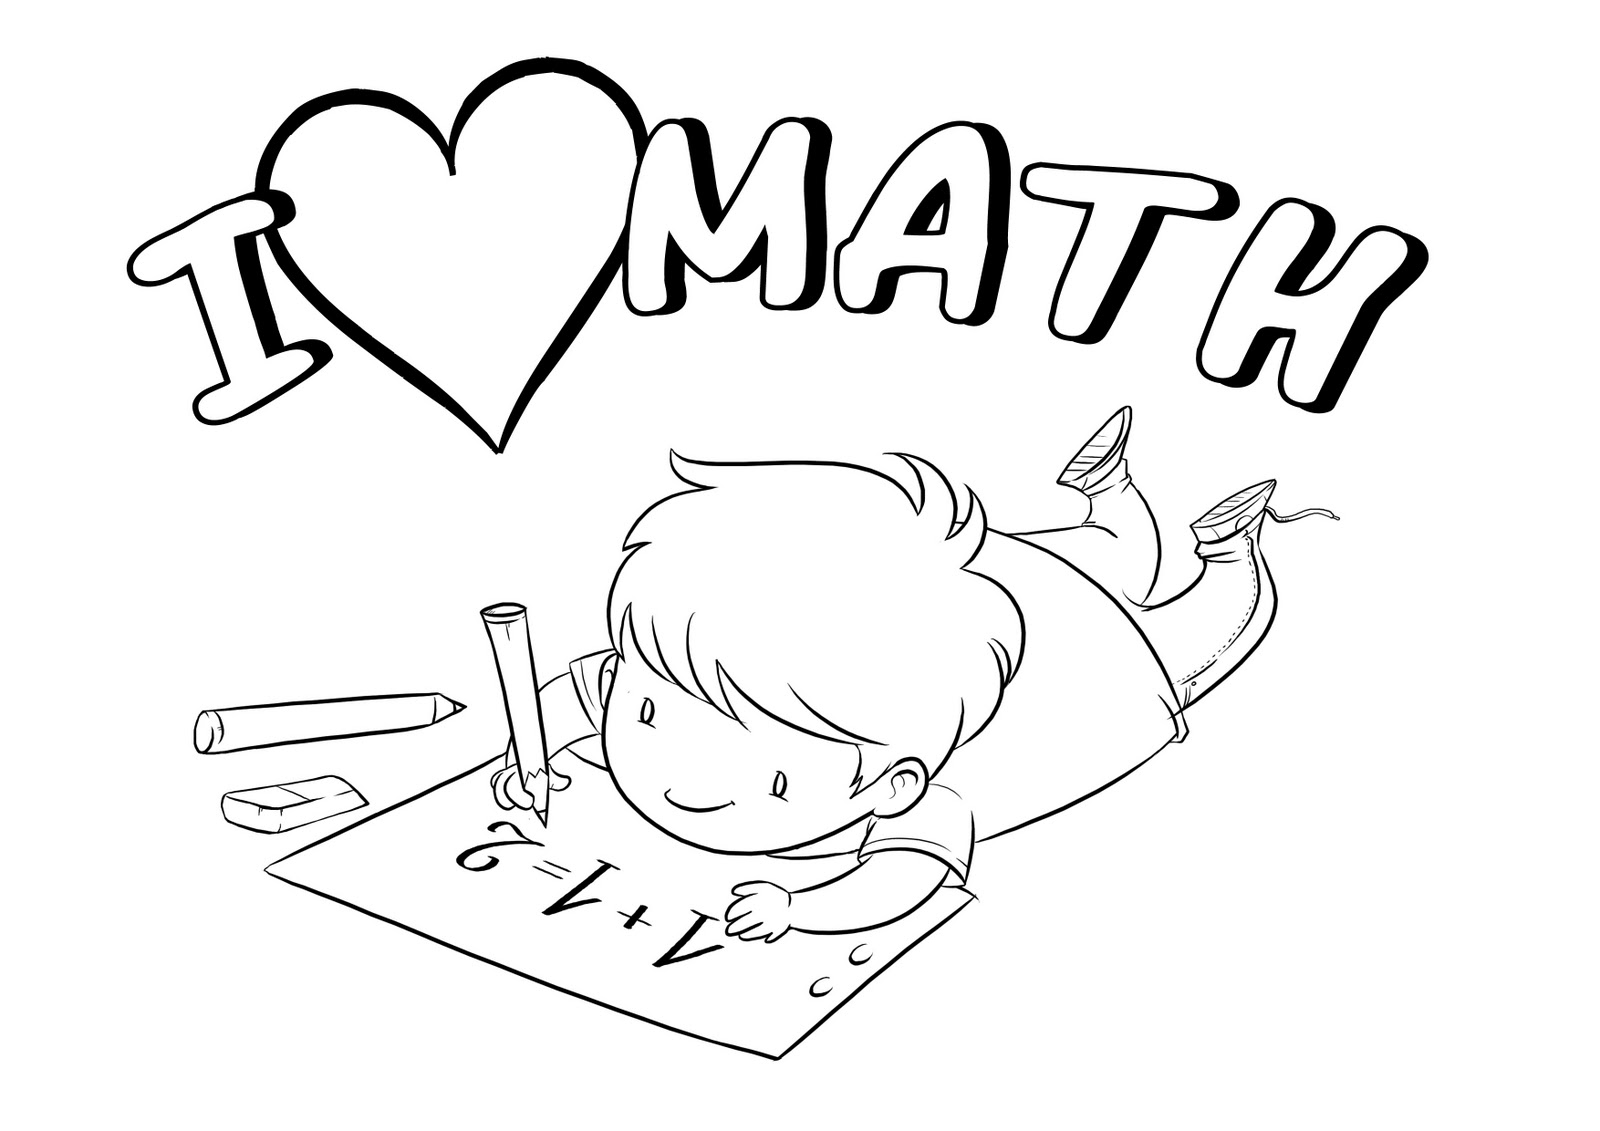 Coloring Pages Math : Math coloring page binder cover printable pages